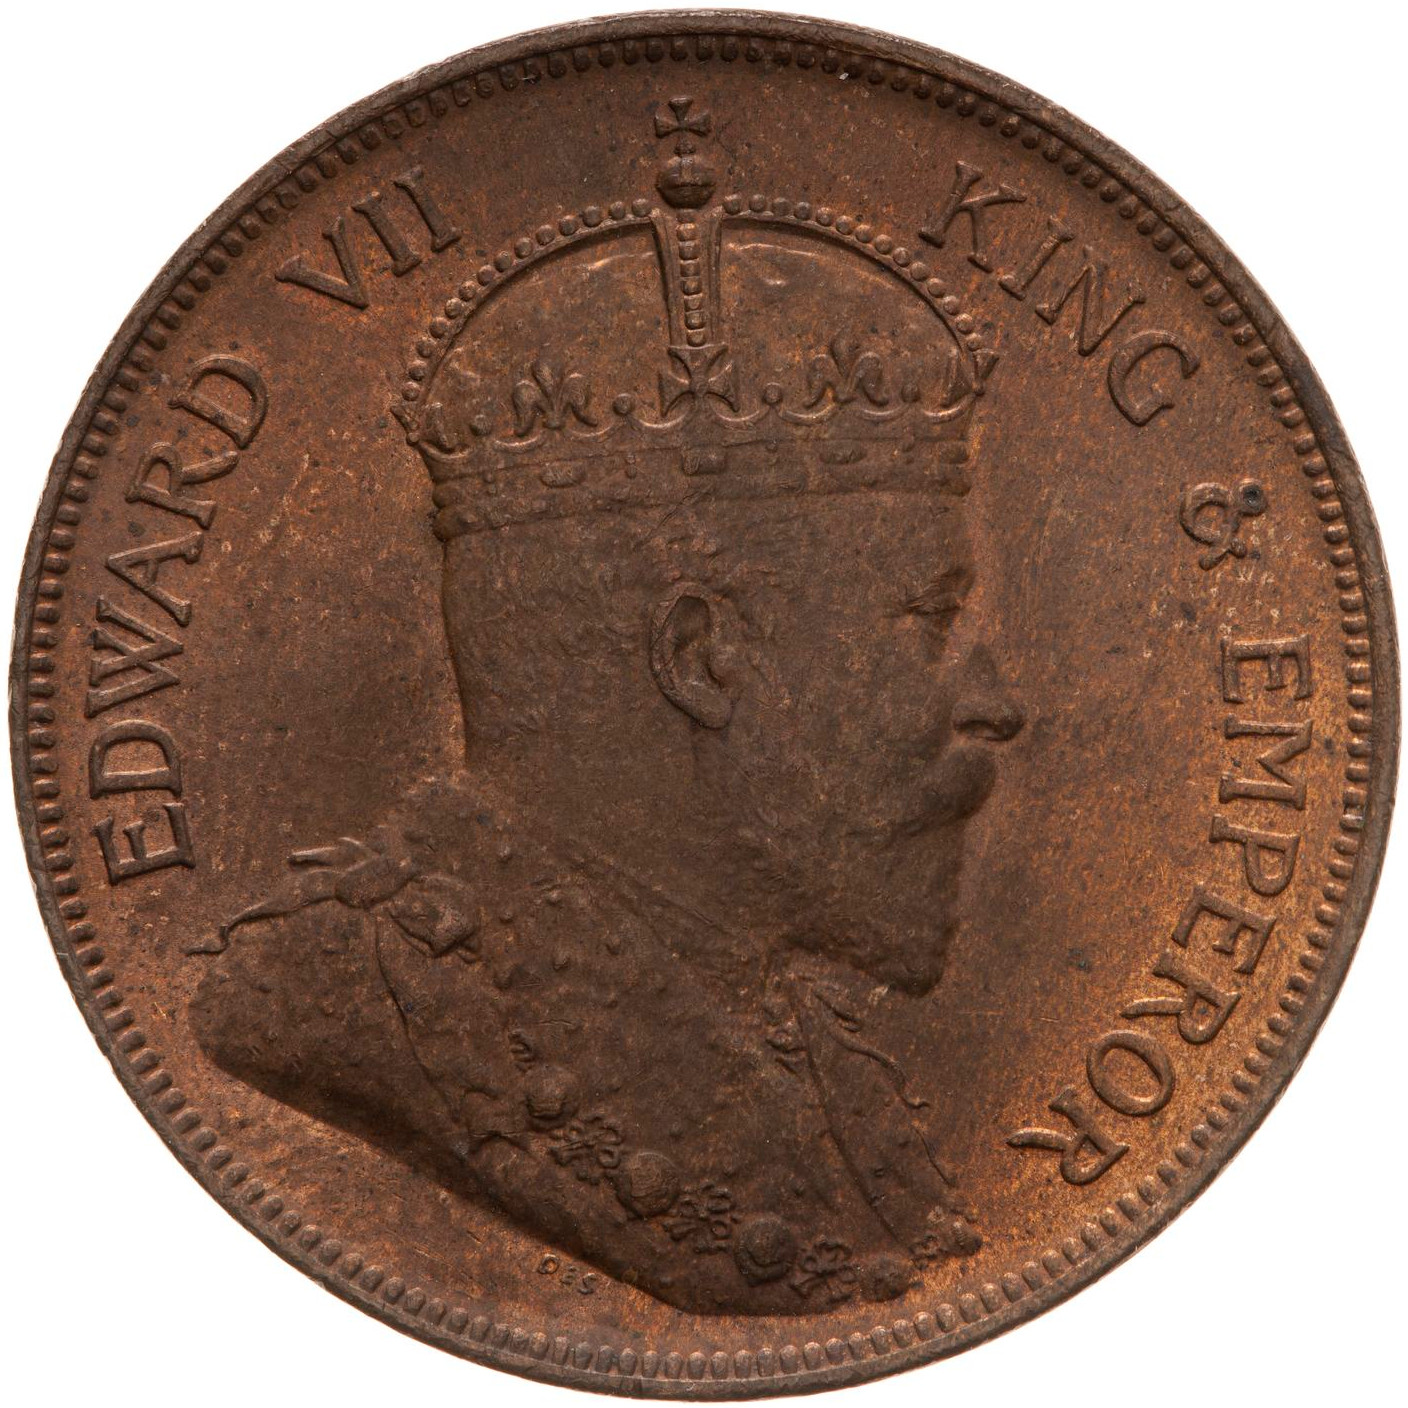 One Cent: Photo Coin - 1 Cent, British Honduras (Belize), 1904